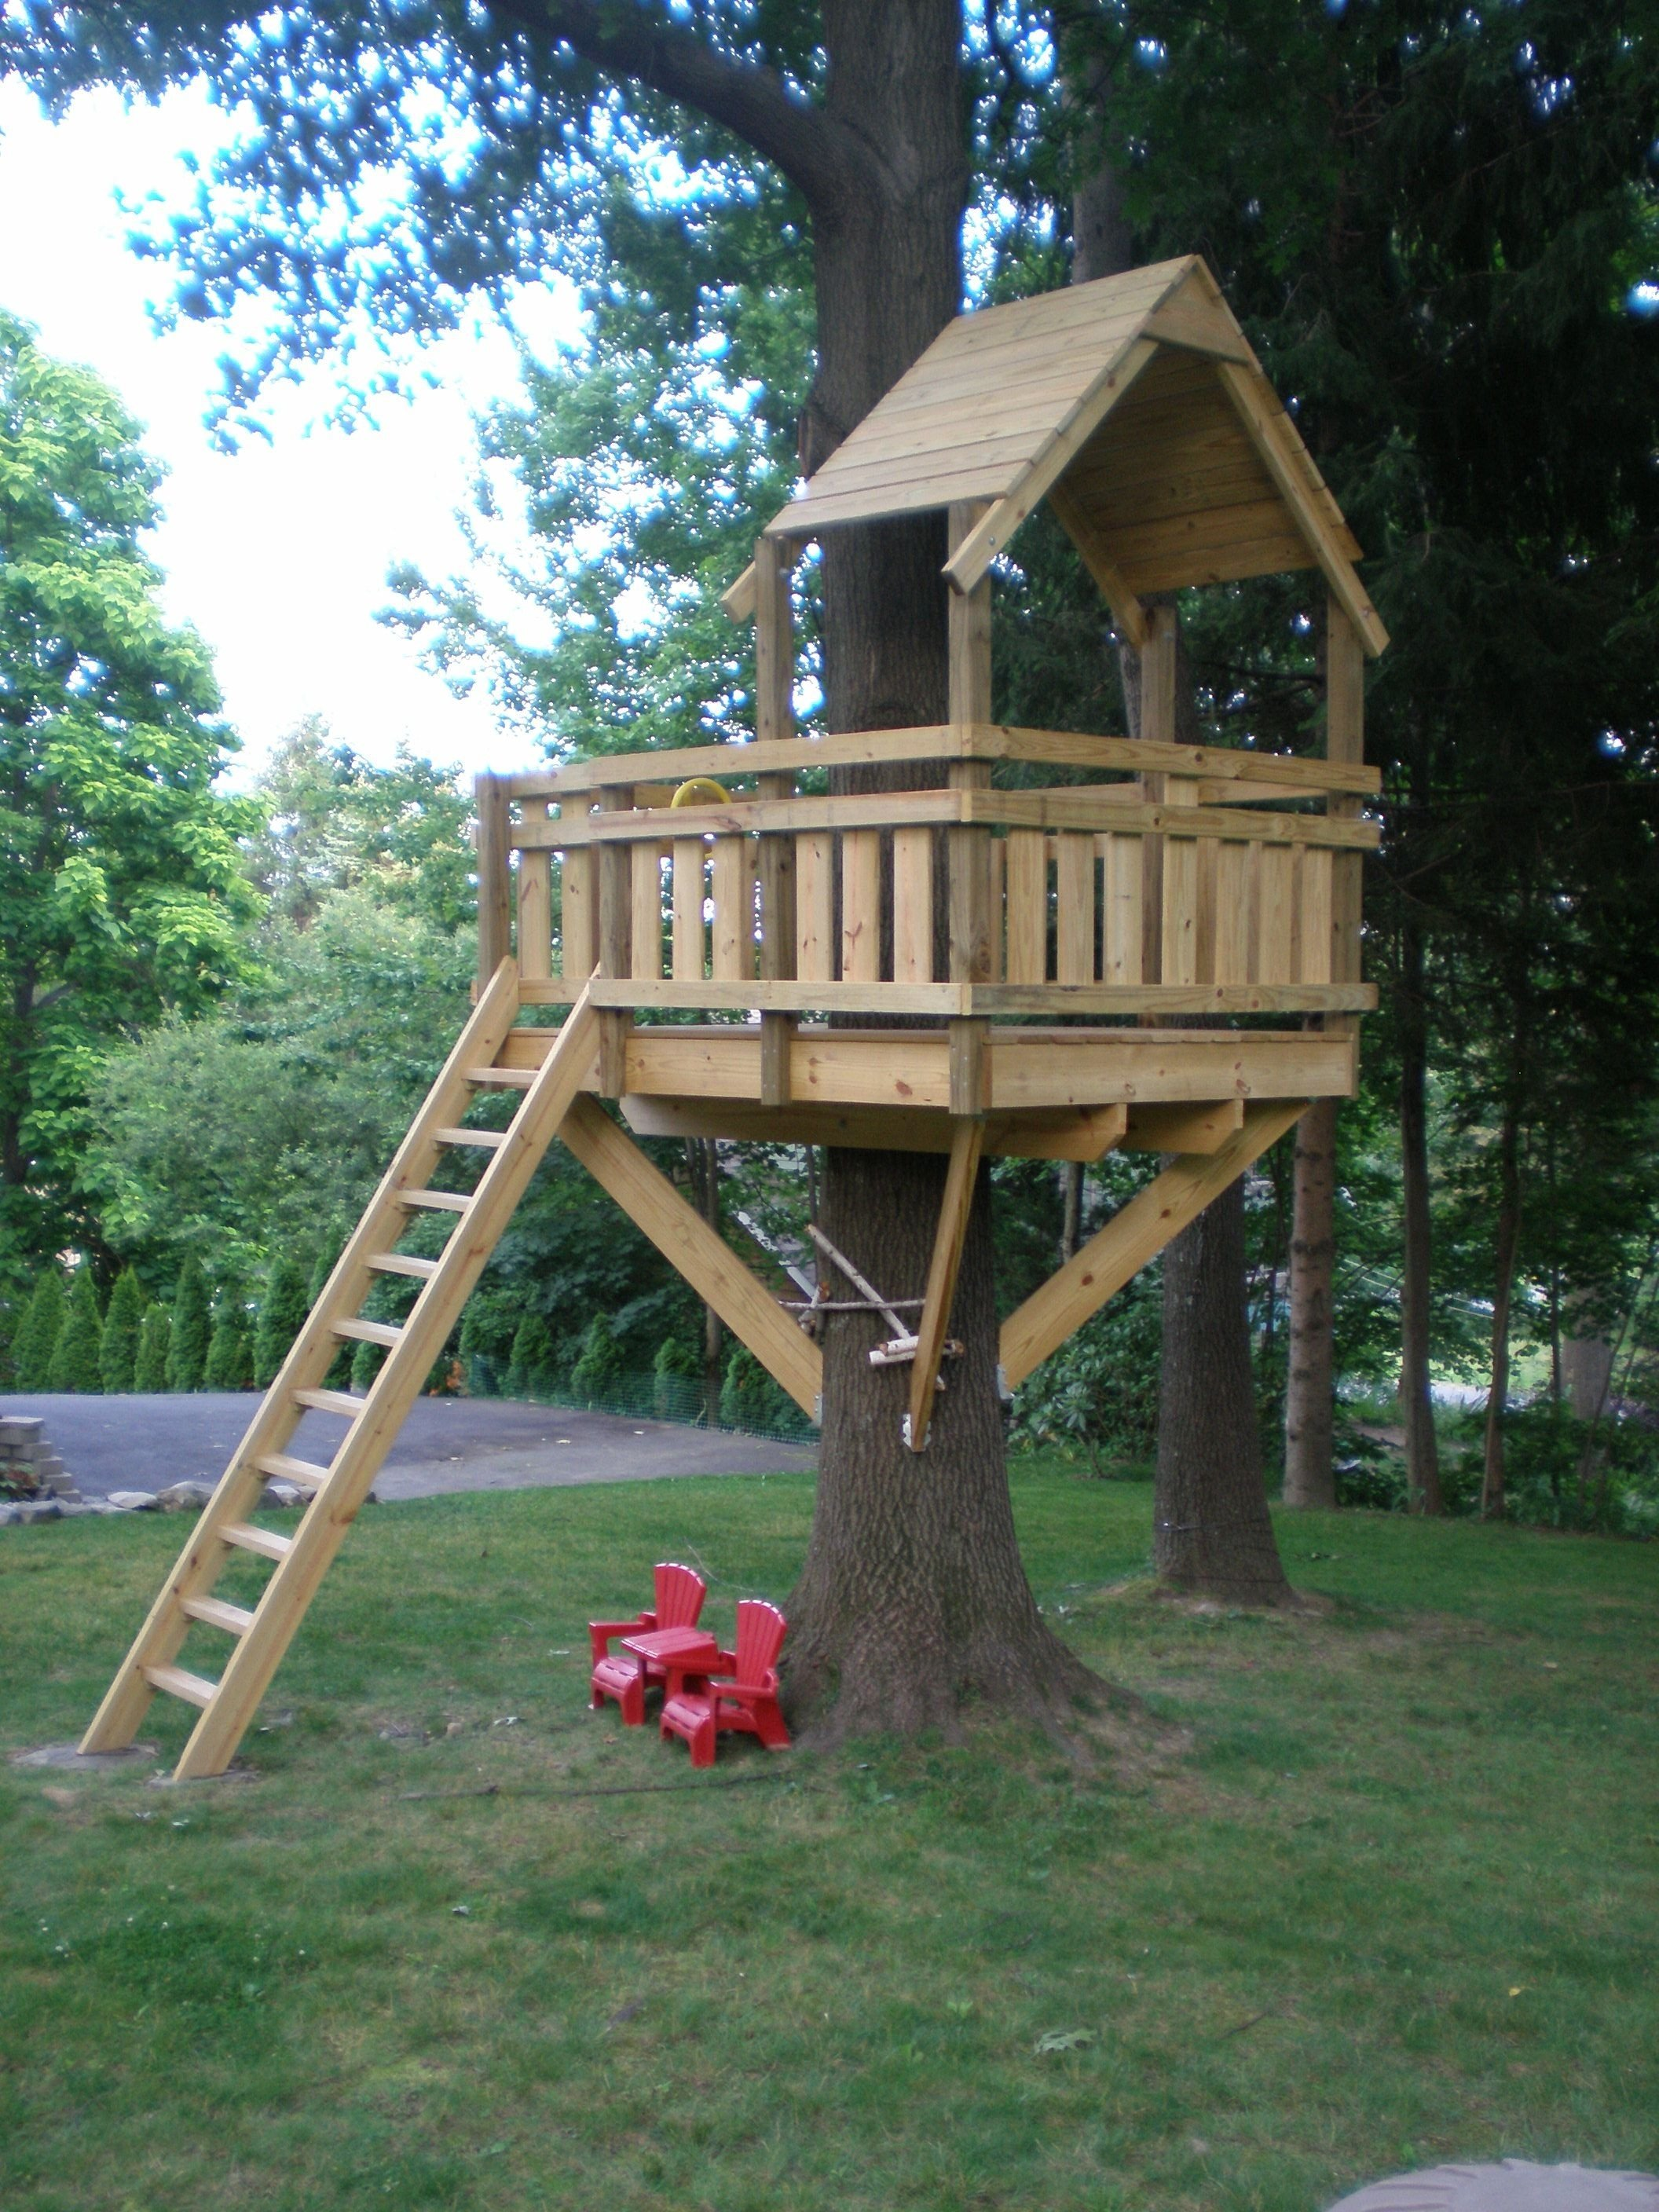 10 Wonderful Tree House Ideas For Kids tree fort ladder gate roof finale tree houses tree house 2020